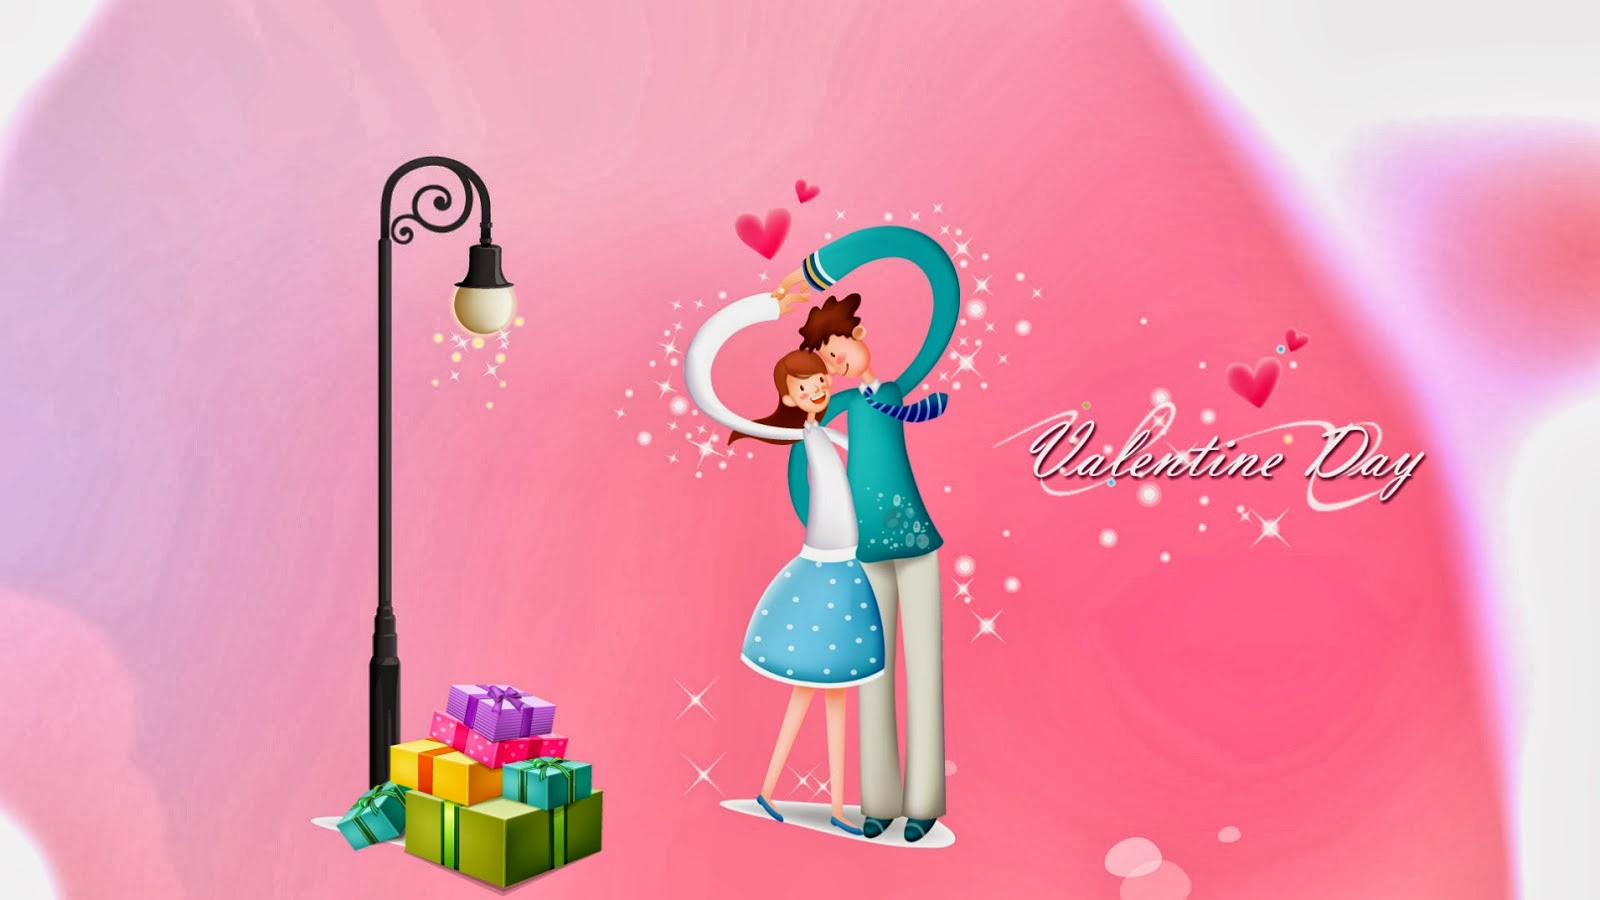 Valentine's Day Images for Whatsapp